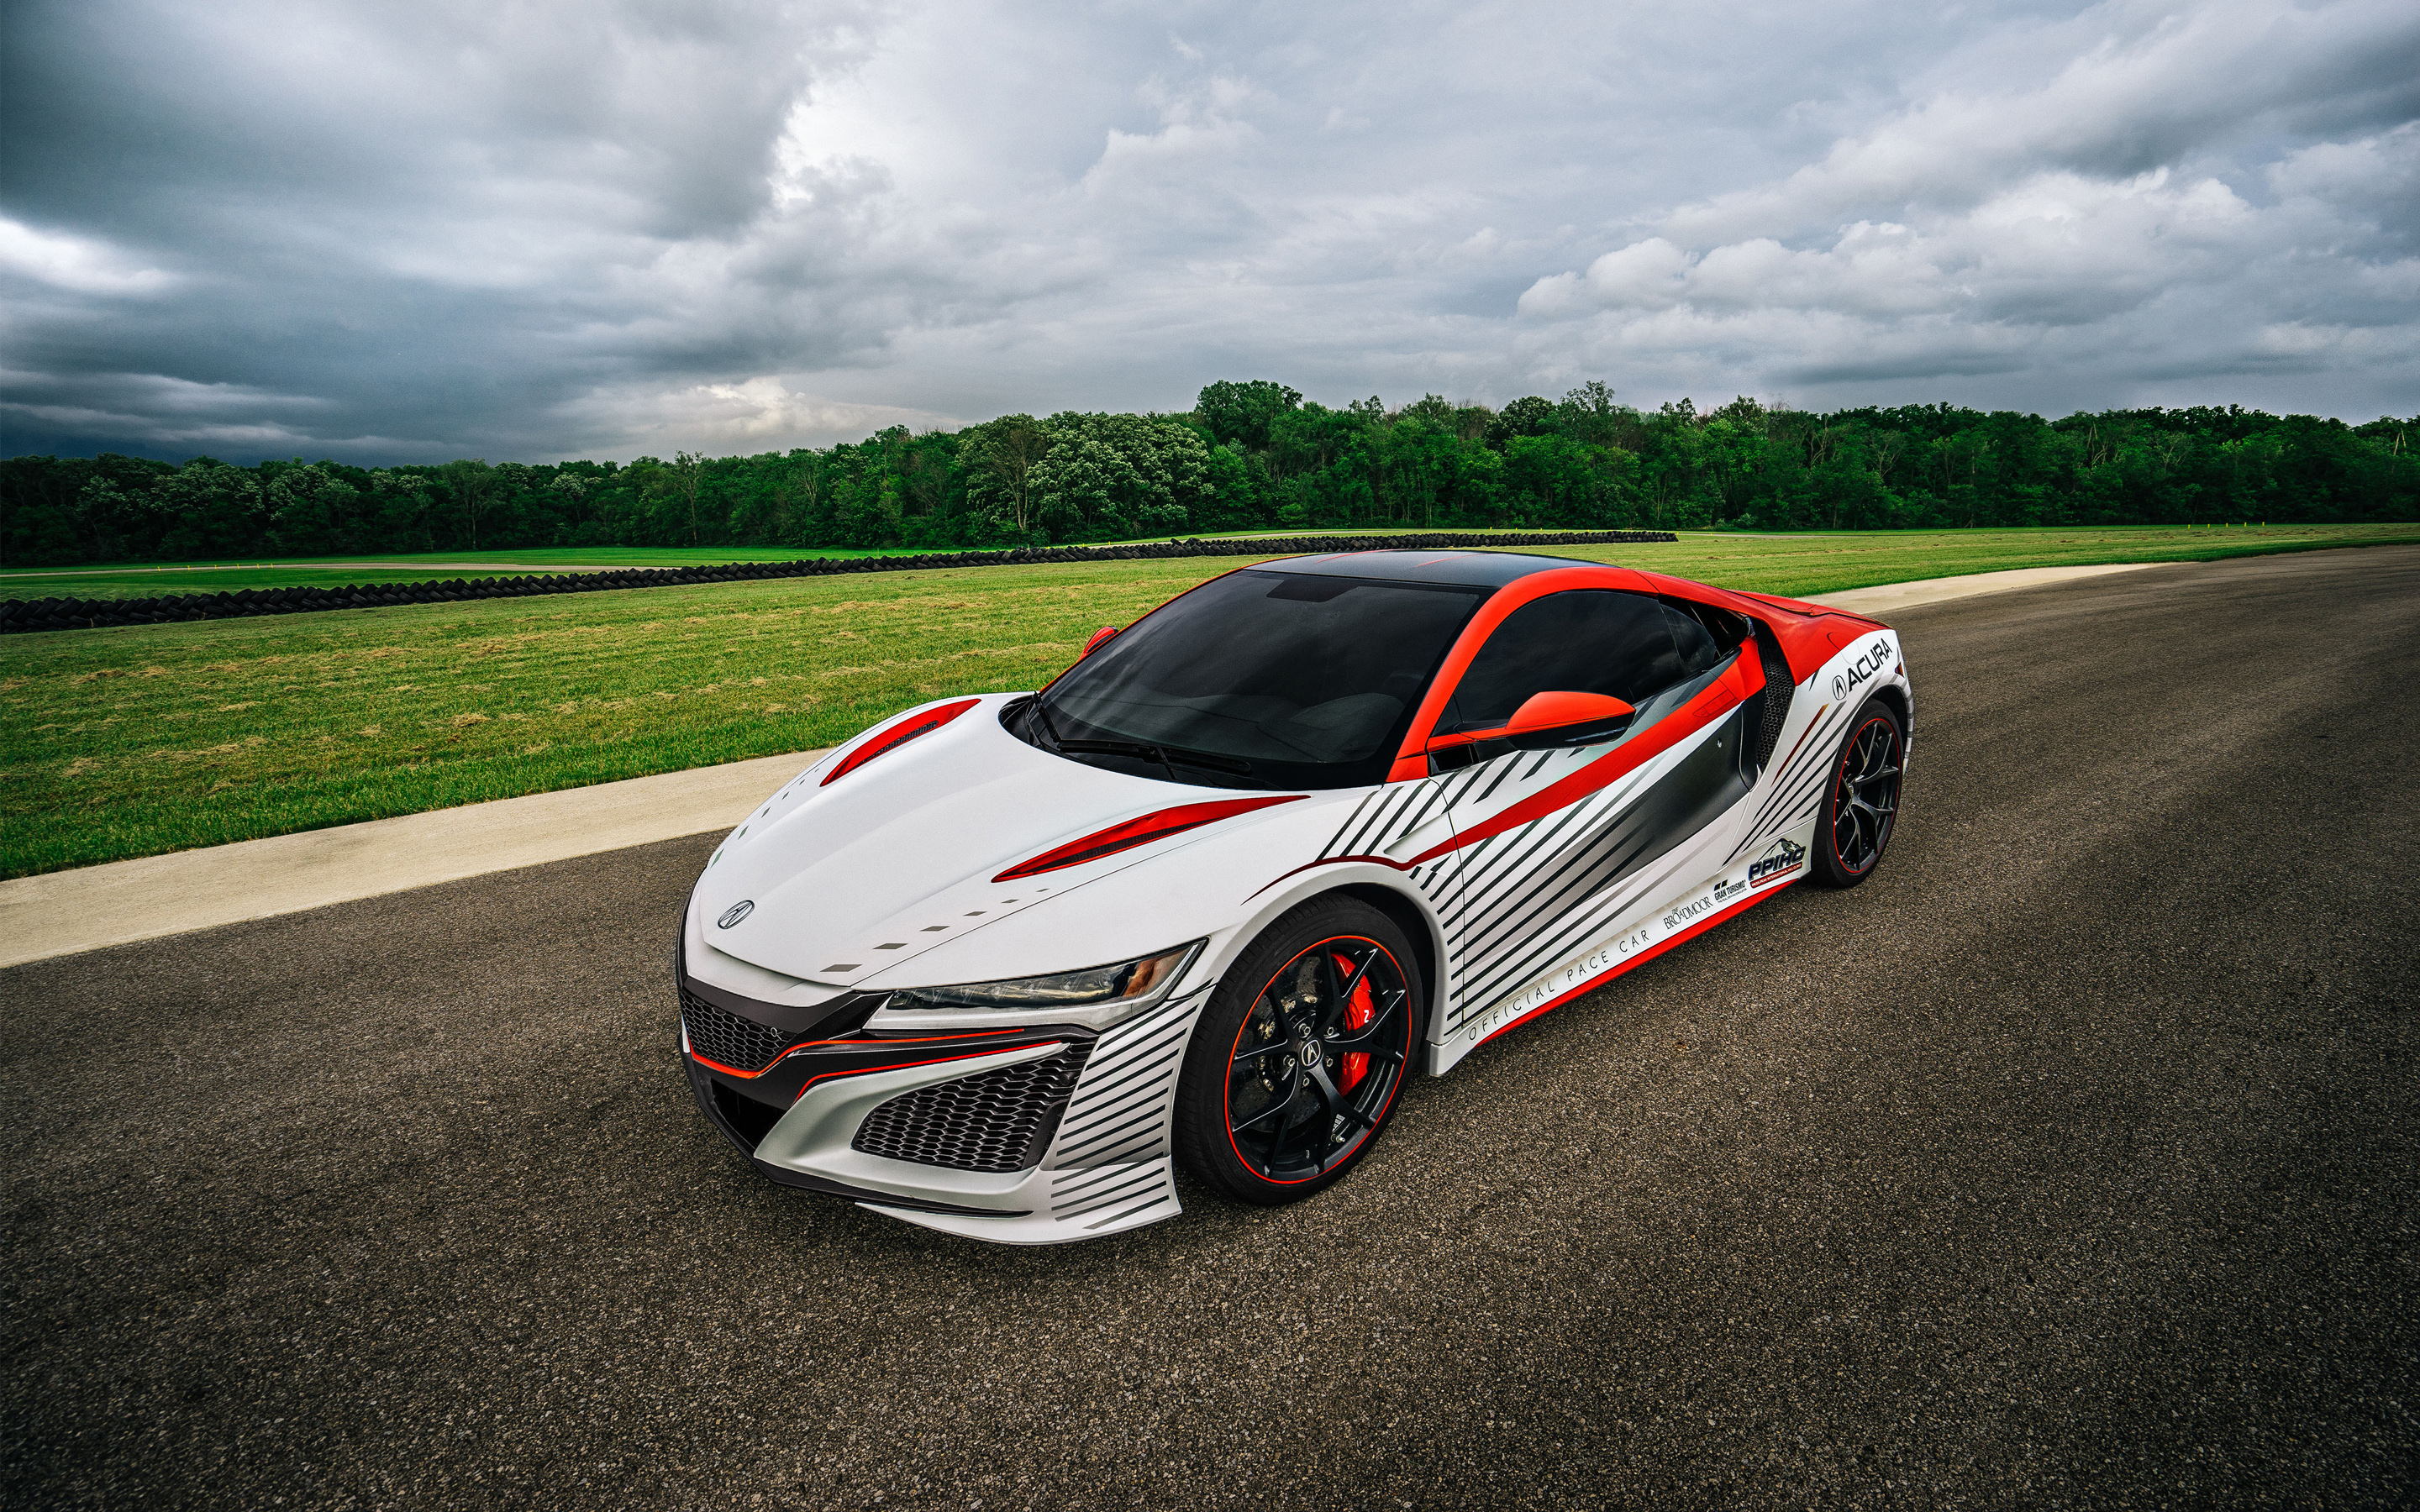 acura nsx red white